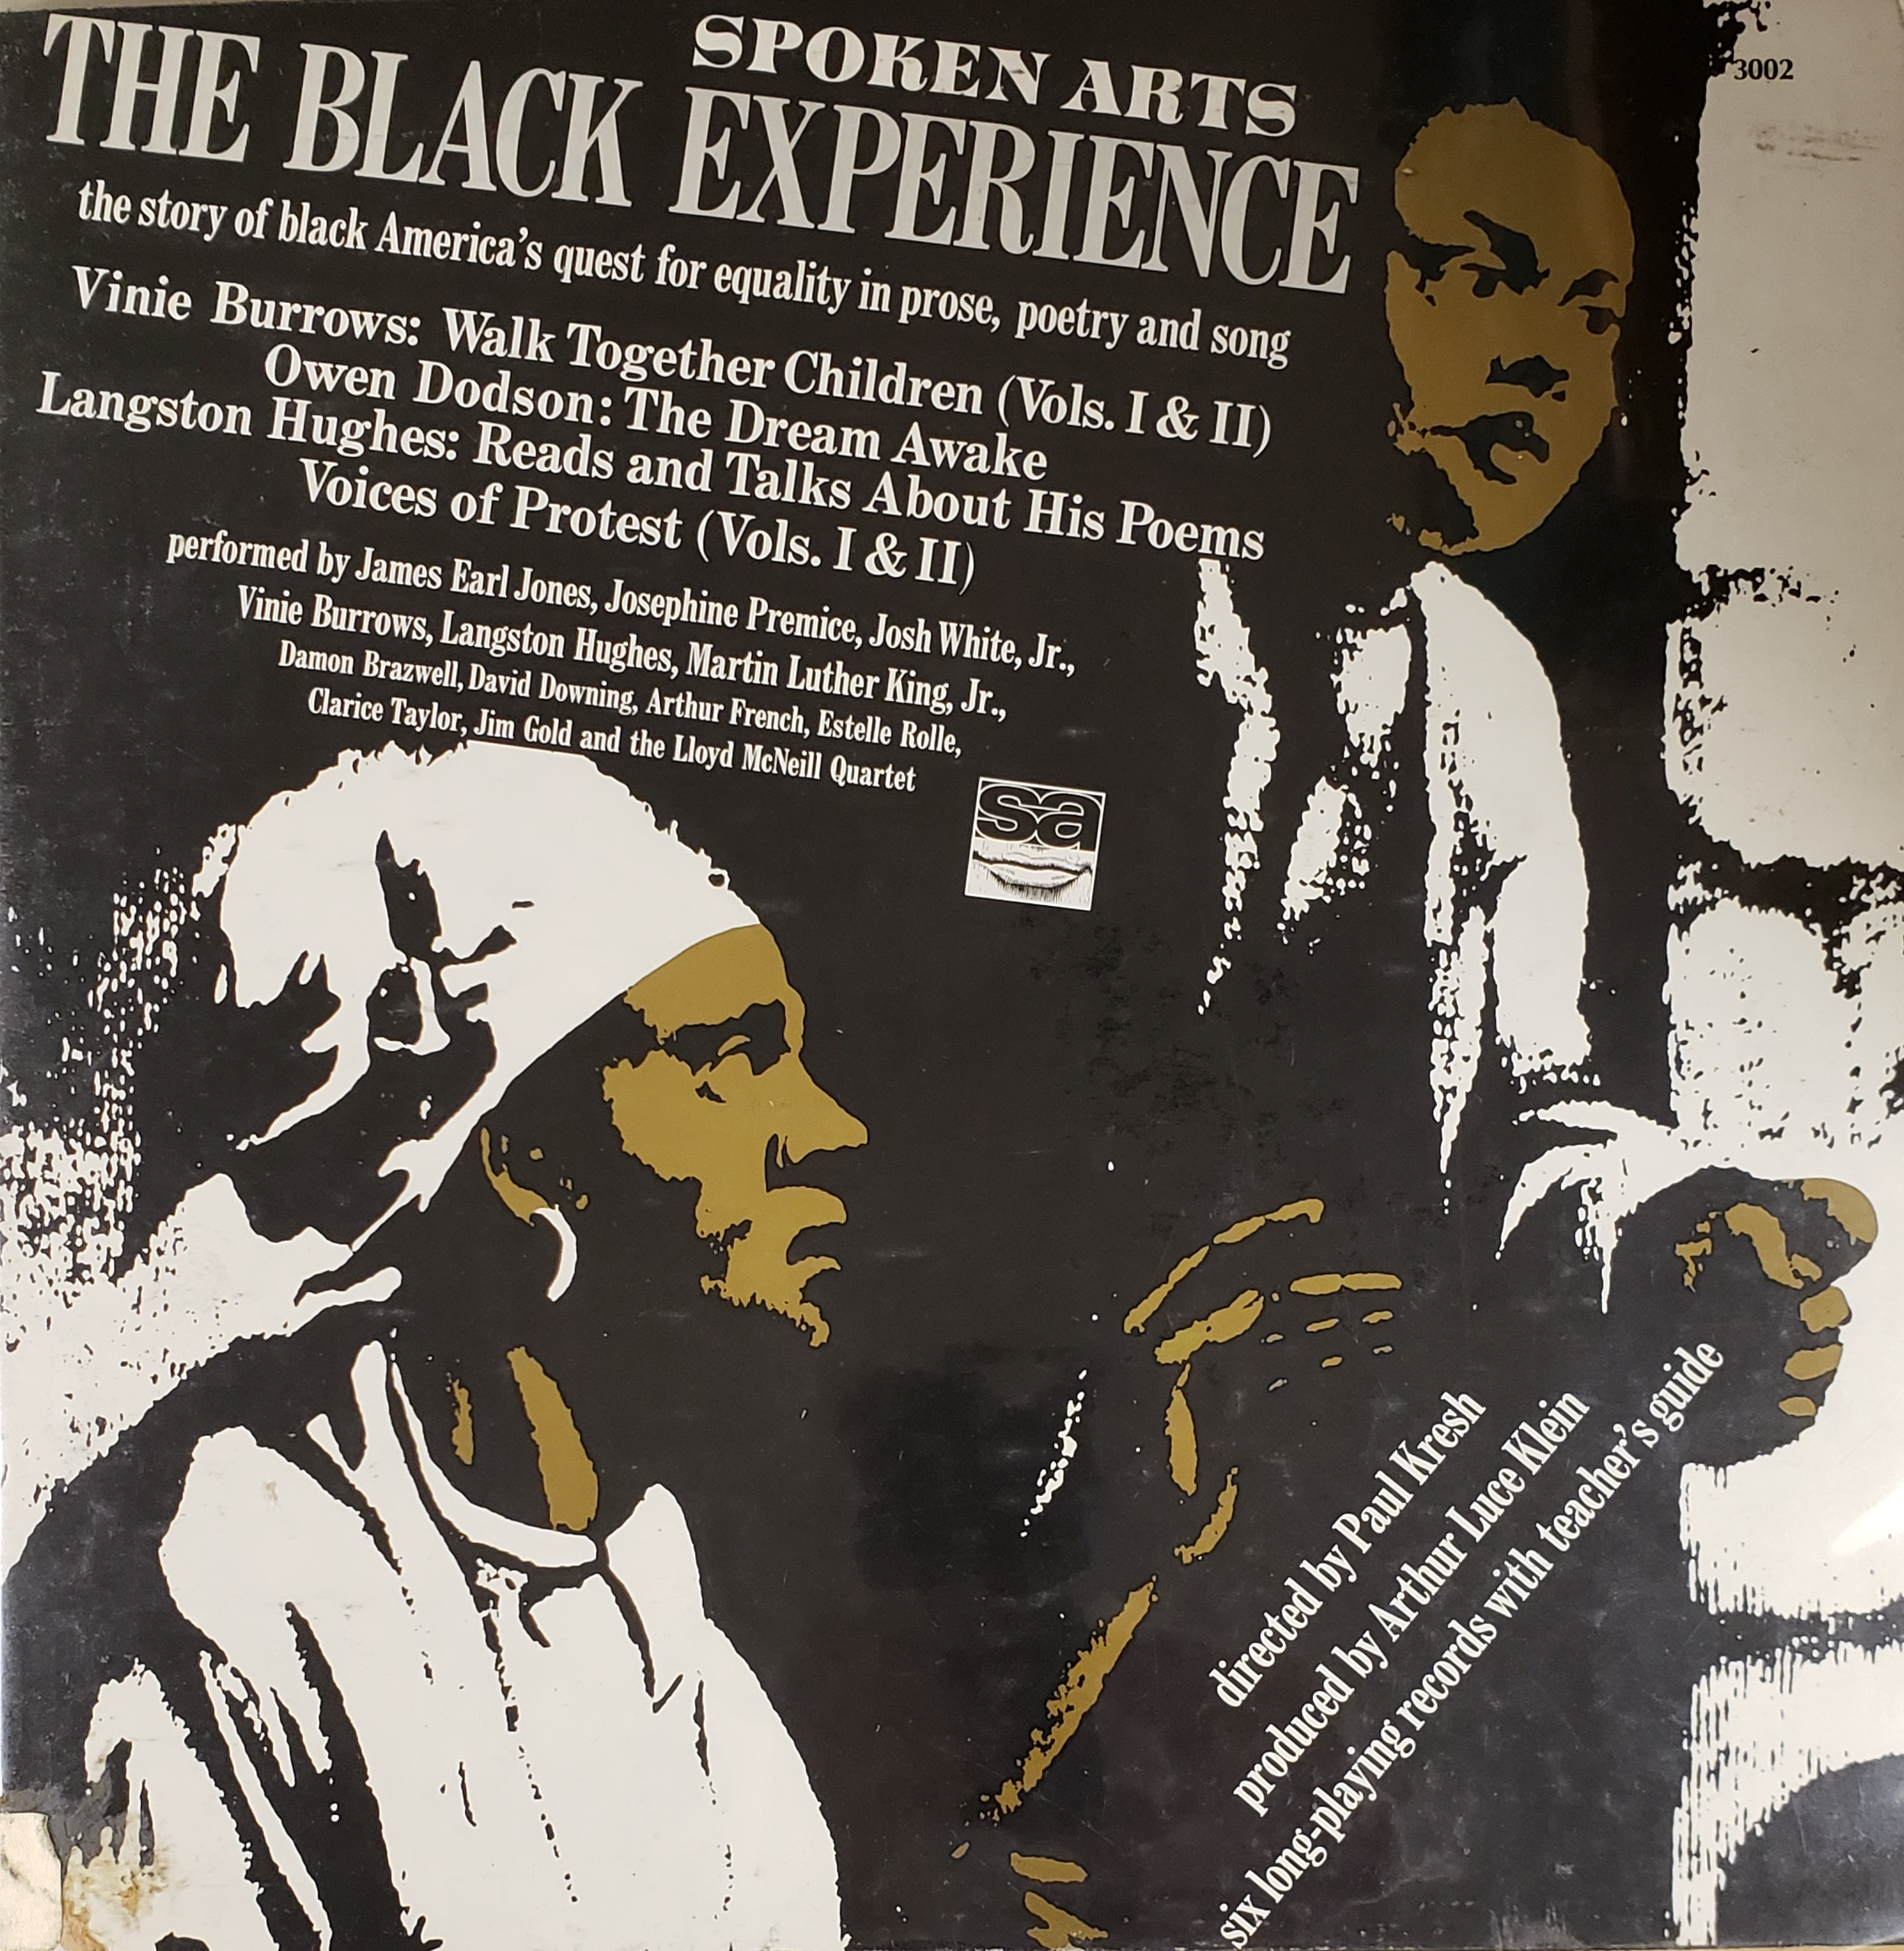 The Black experience; the story of black America's quest for equality in prose, poetry and song.